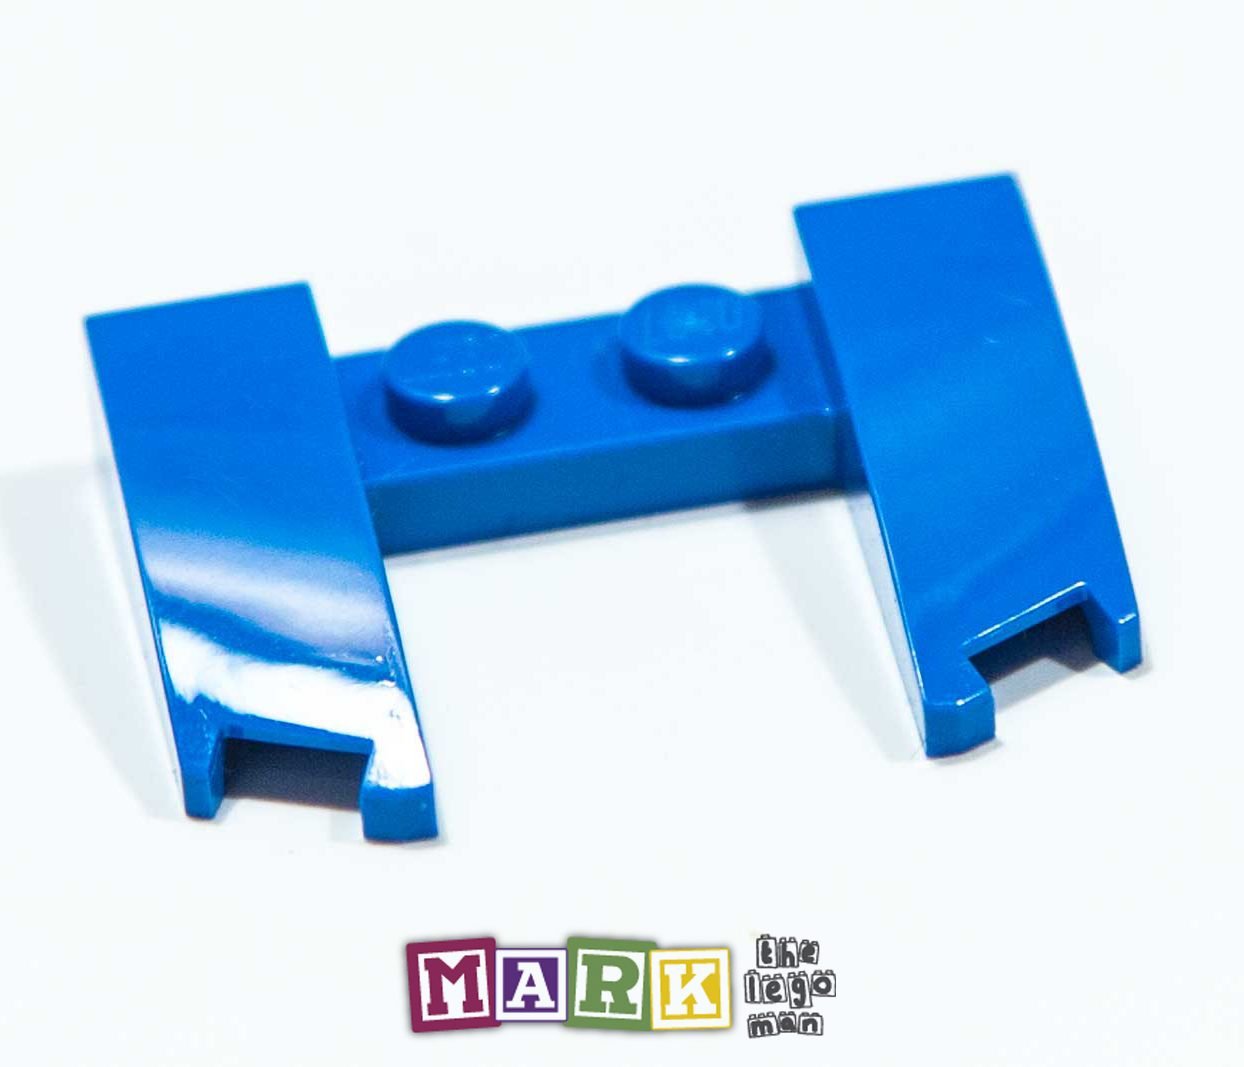 New Lego 11291 4x3x2/3 Front with bow 6062206